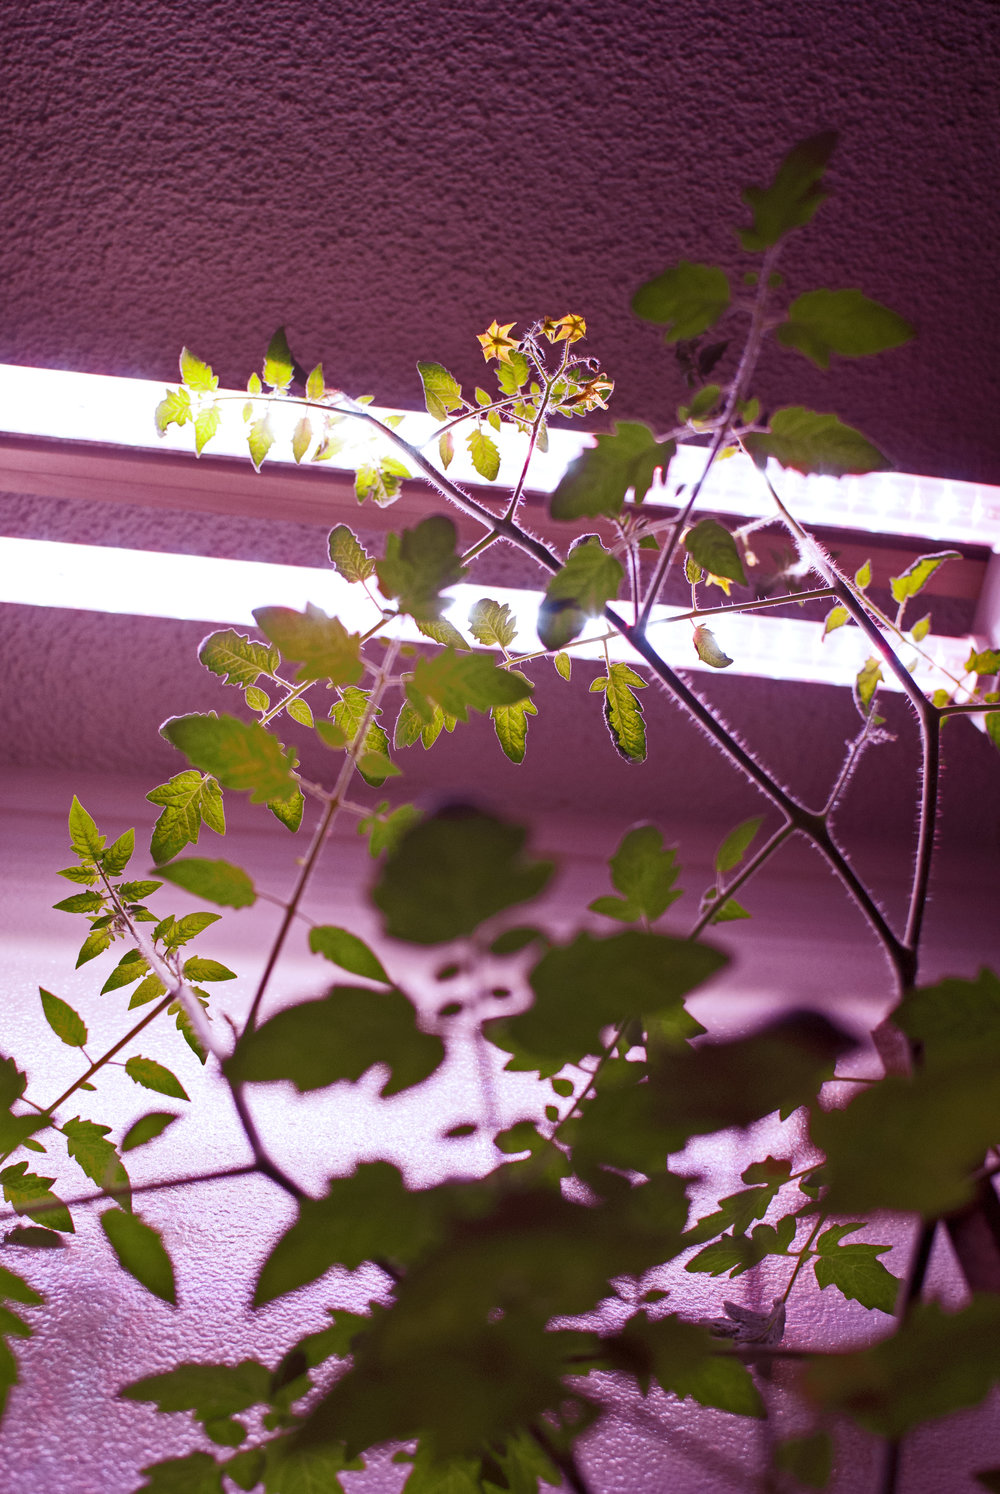 The plants *love* the pink grow lights!  This is a tomato plant that grows taller and taller. Check out those darling yellow flowers!